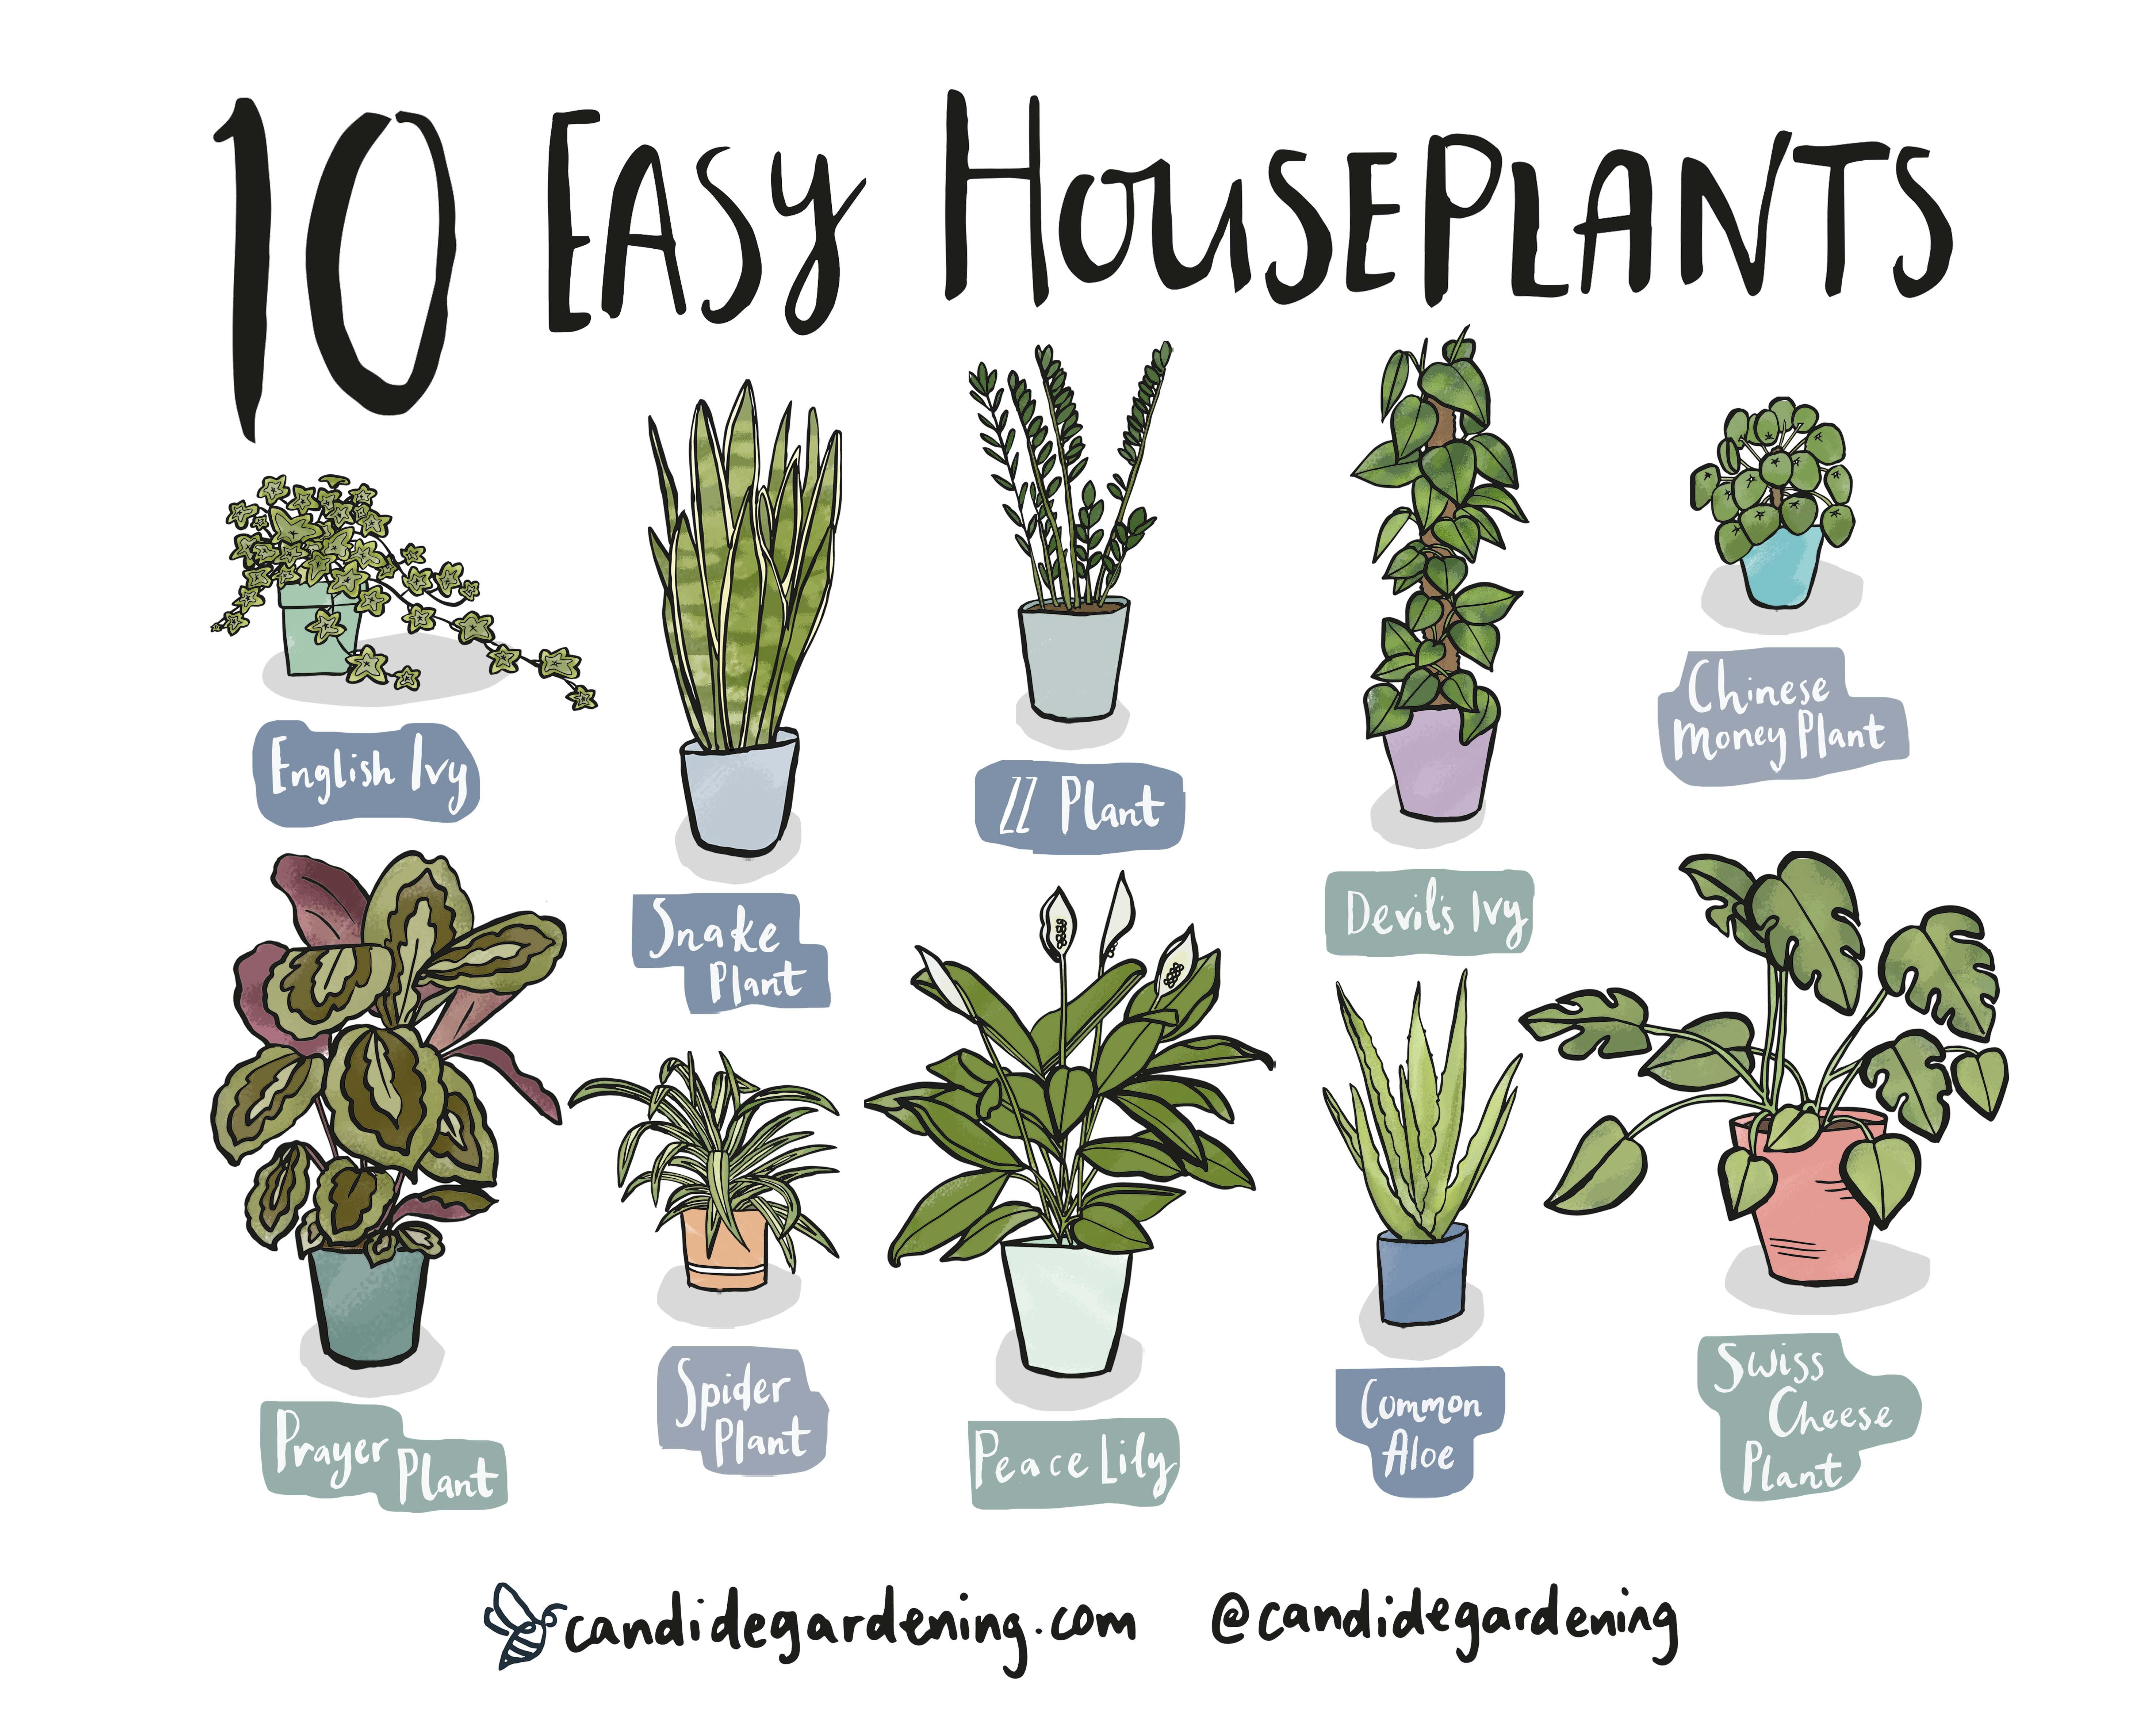 10 Houseplants That Are Actually Easy To Keep Alive Discover Candide Gardening